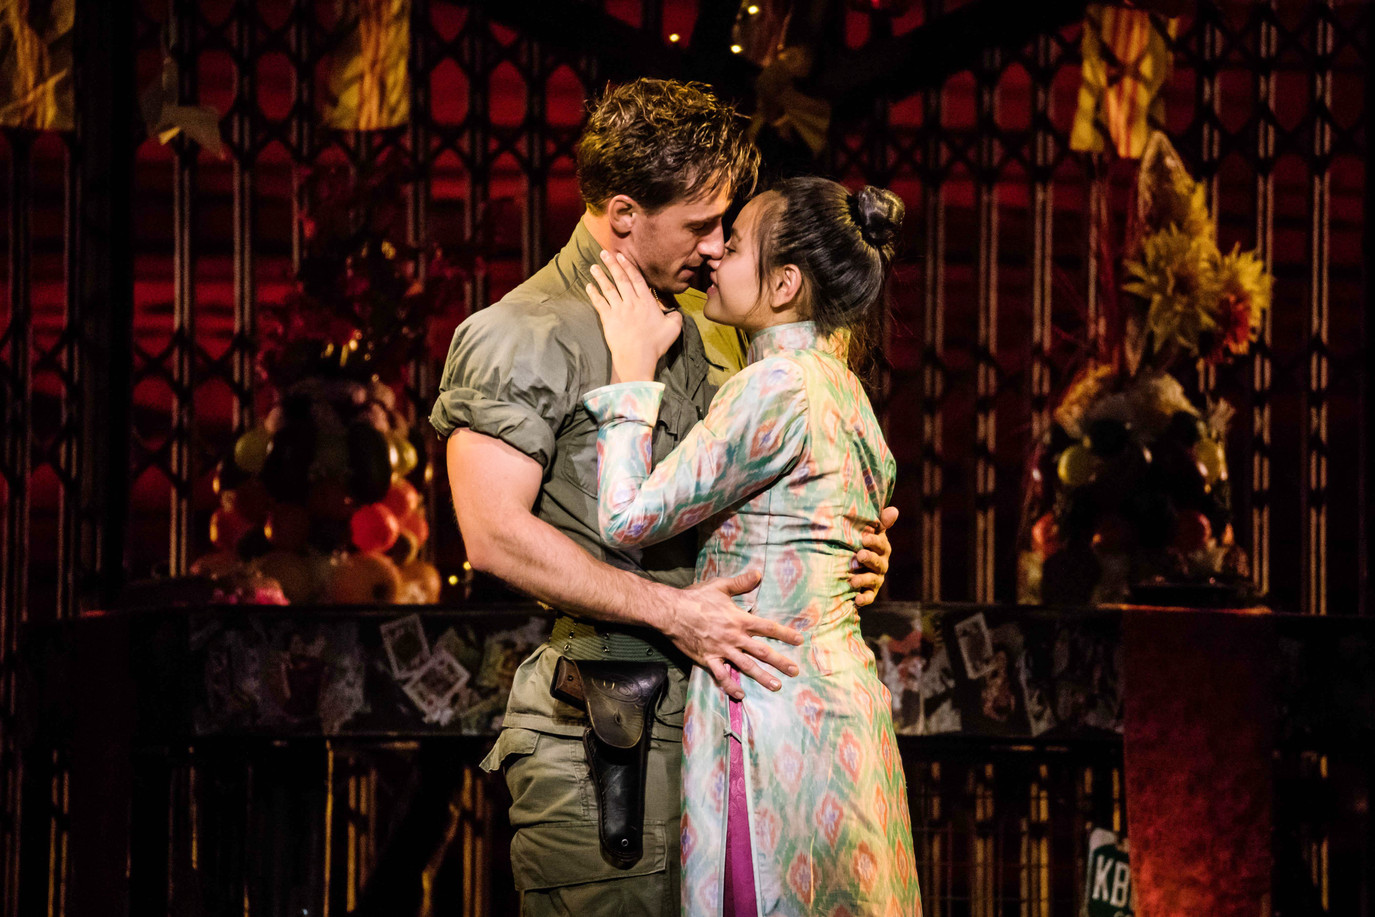 """Emily Bautista as 'Kim' and Anthony Festa as 'Chris' in the North American Tour of MISS SAIGON singing """"Last Night of the World"""""""